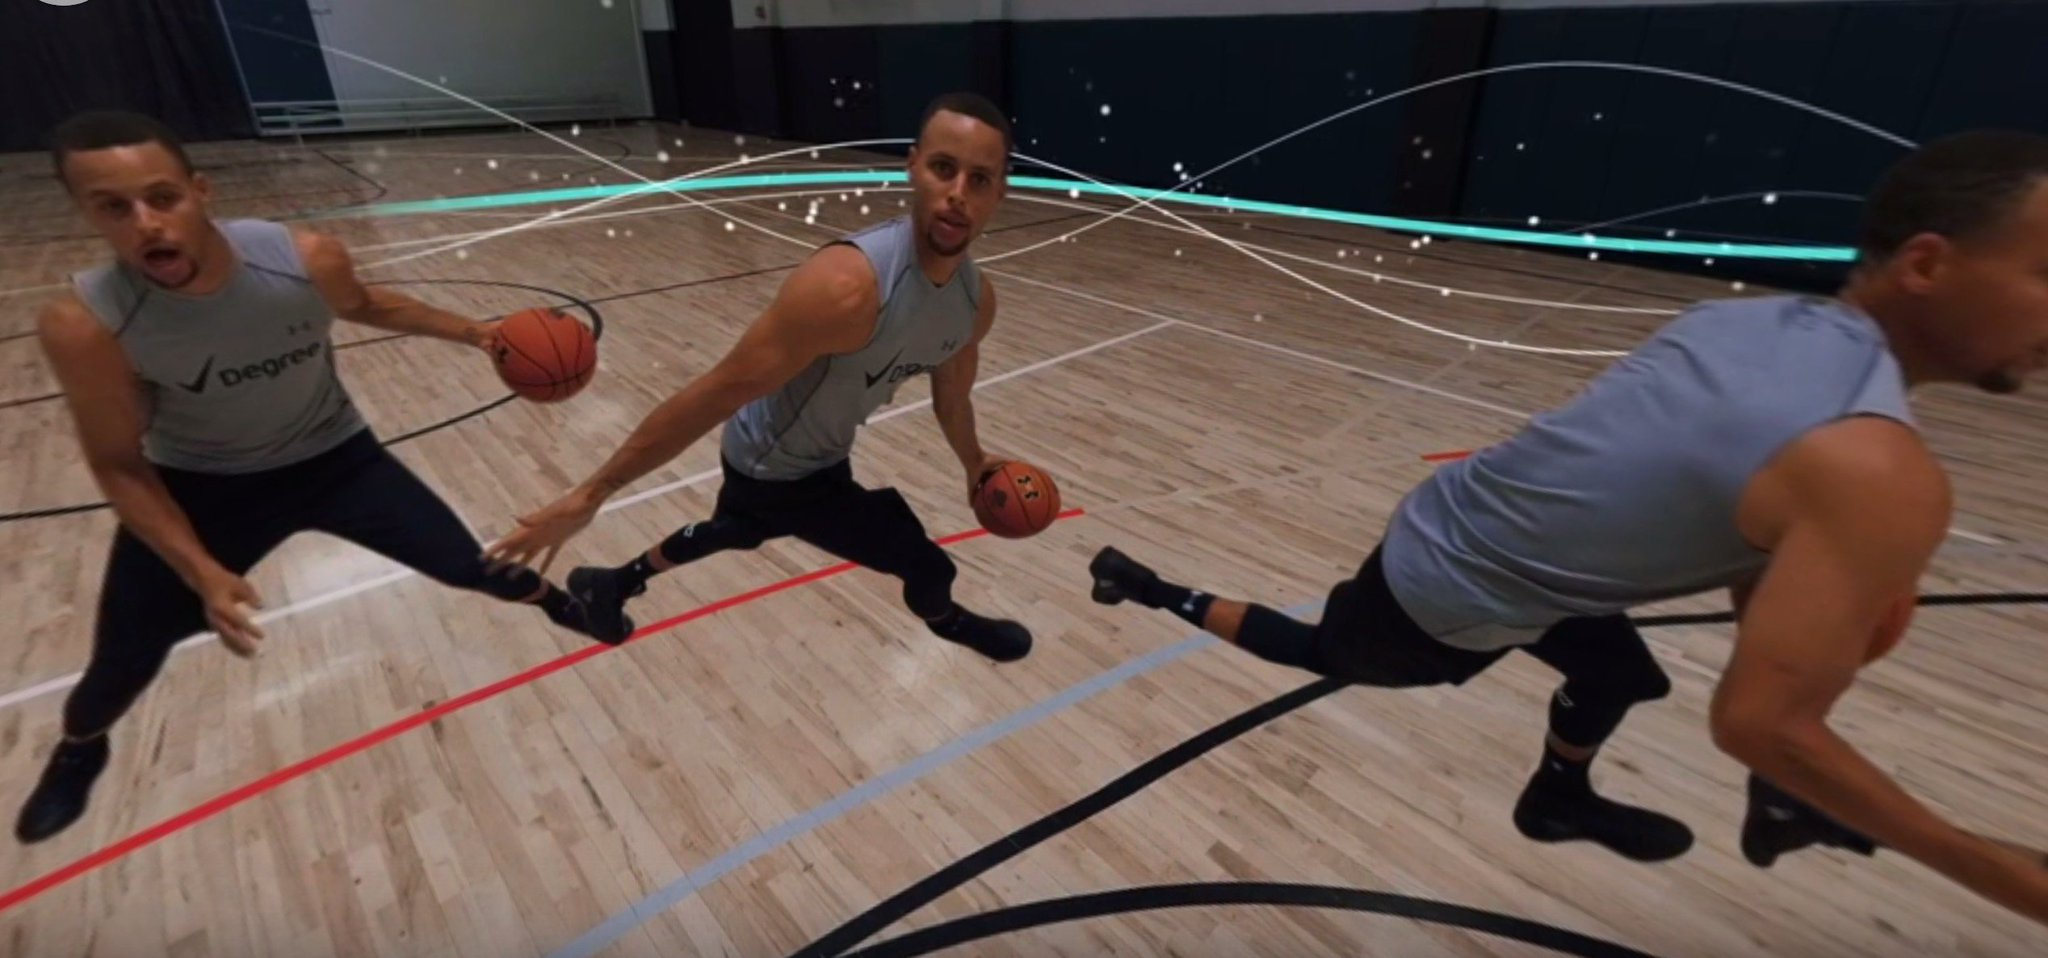 See #30 in 360°. Follow along with #StephCurry for every shot and every move, at every angle. #RedefineWhatsPossible https://t.co/HJZ3gyFU6Q